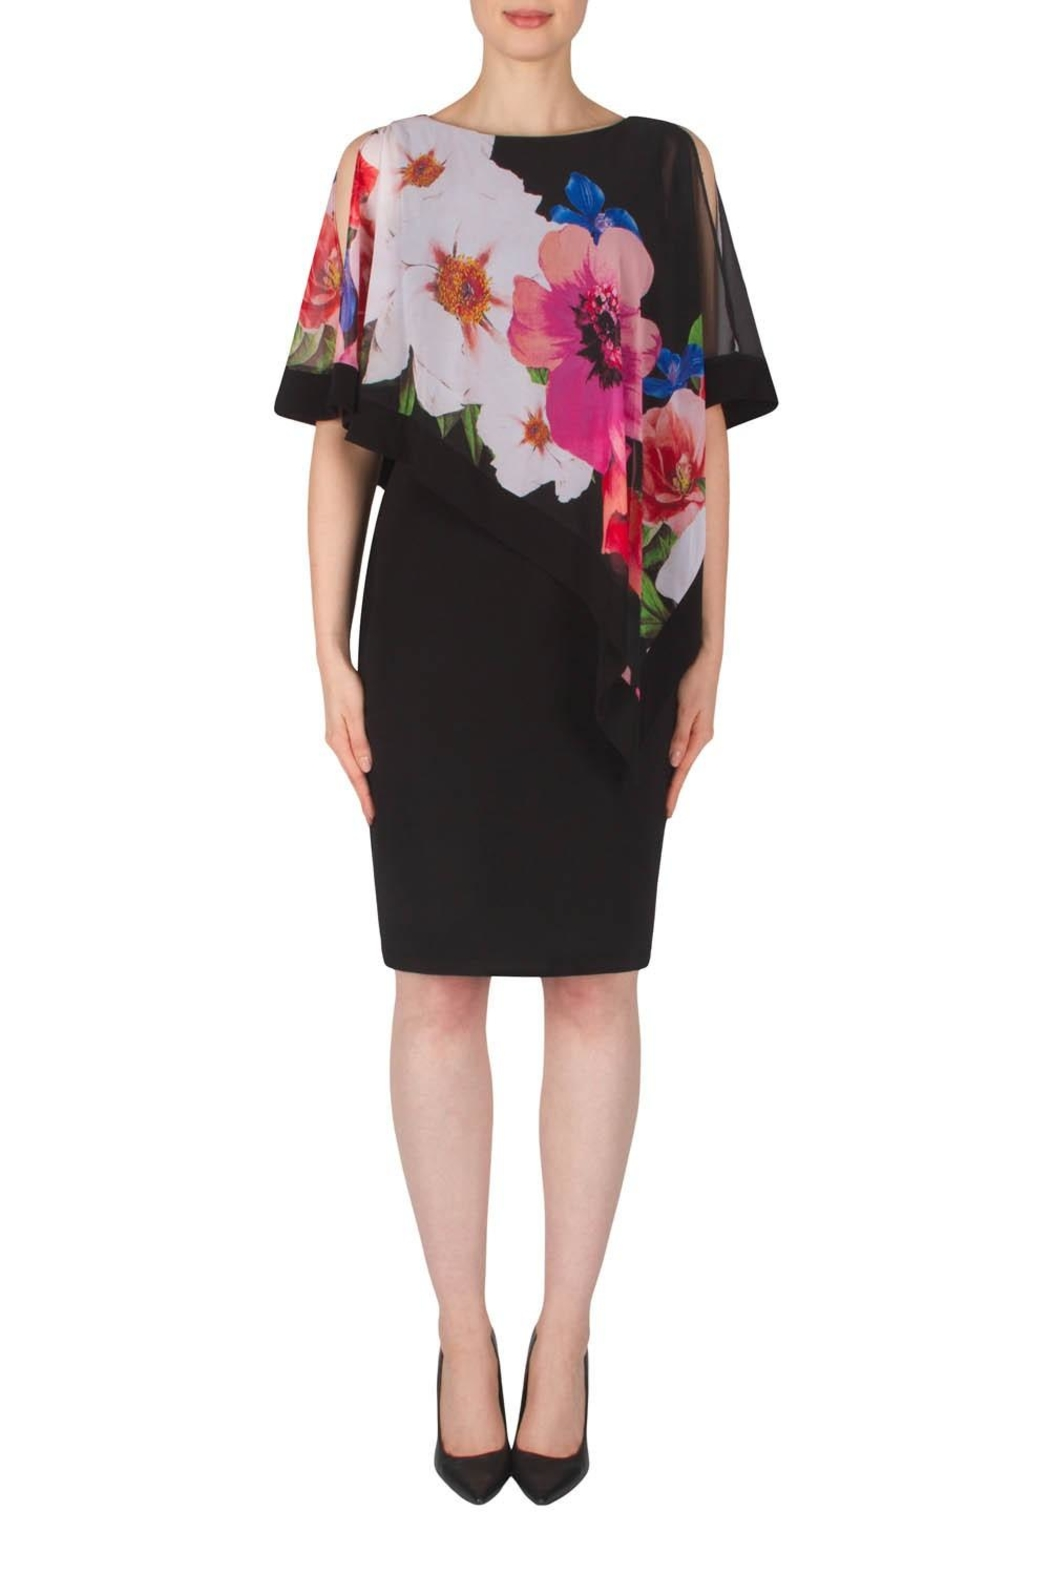 Joseph Ribkoff Floral Overlay Dress - Main Image